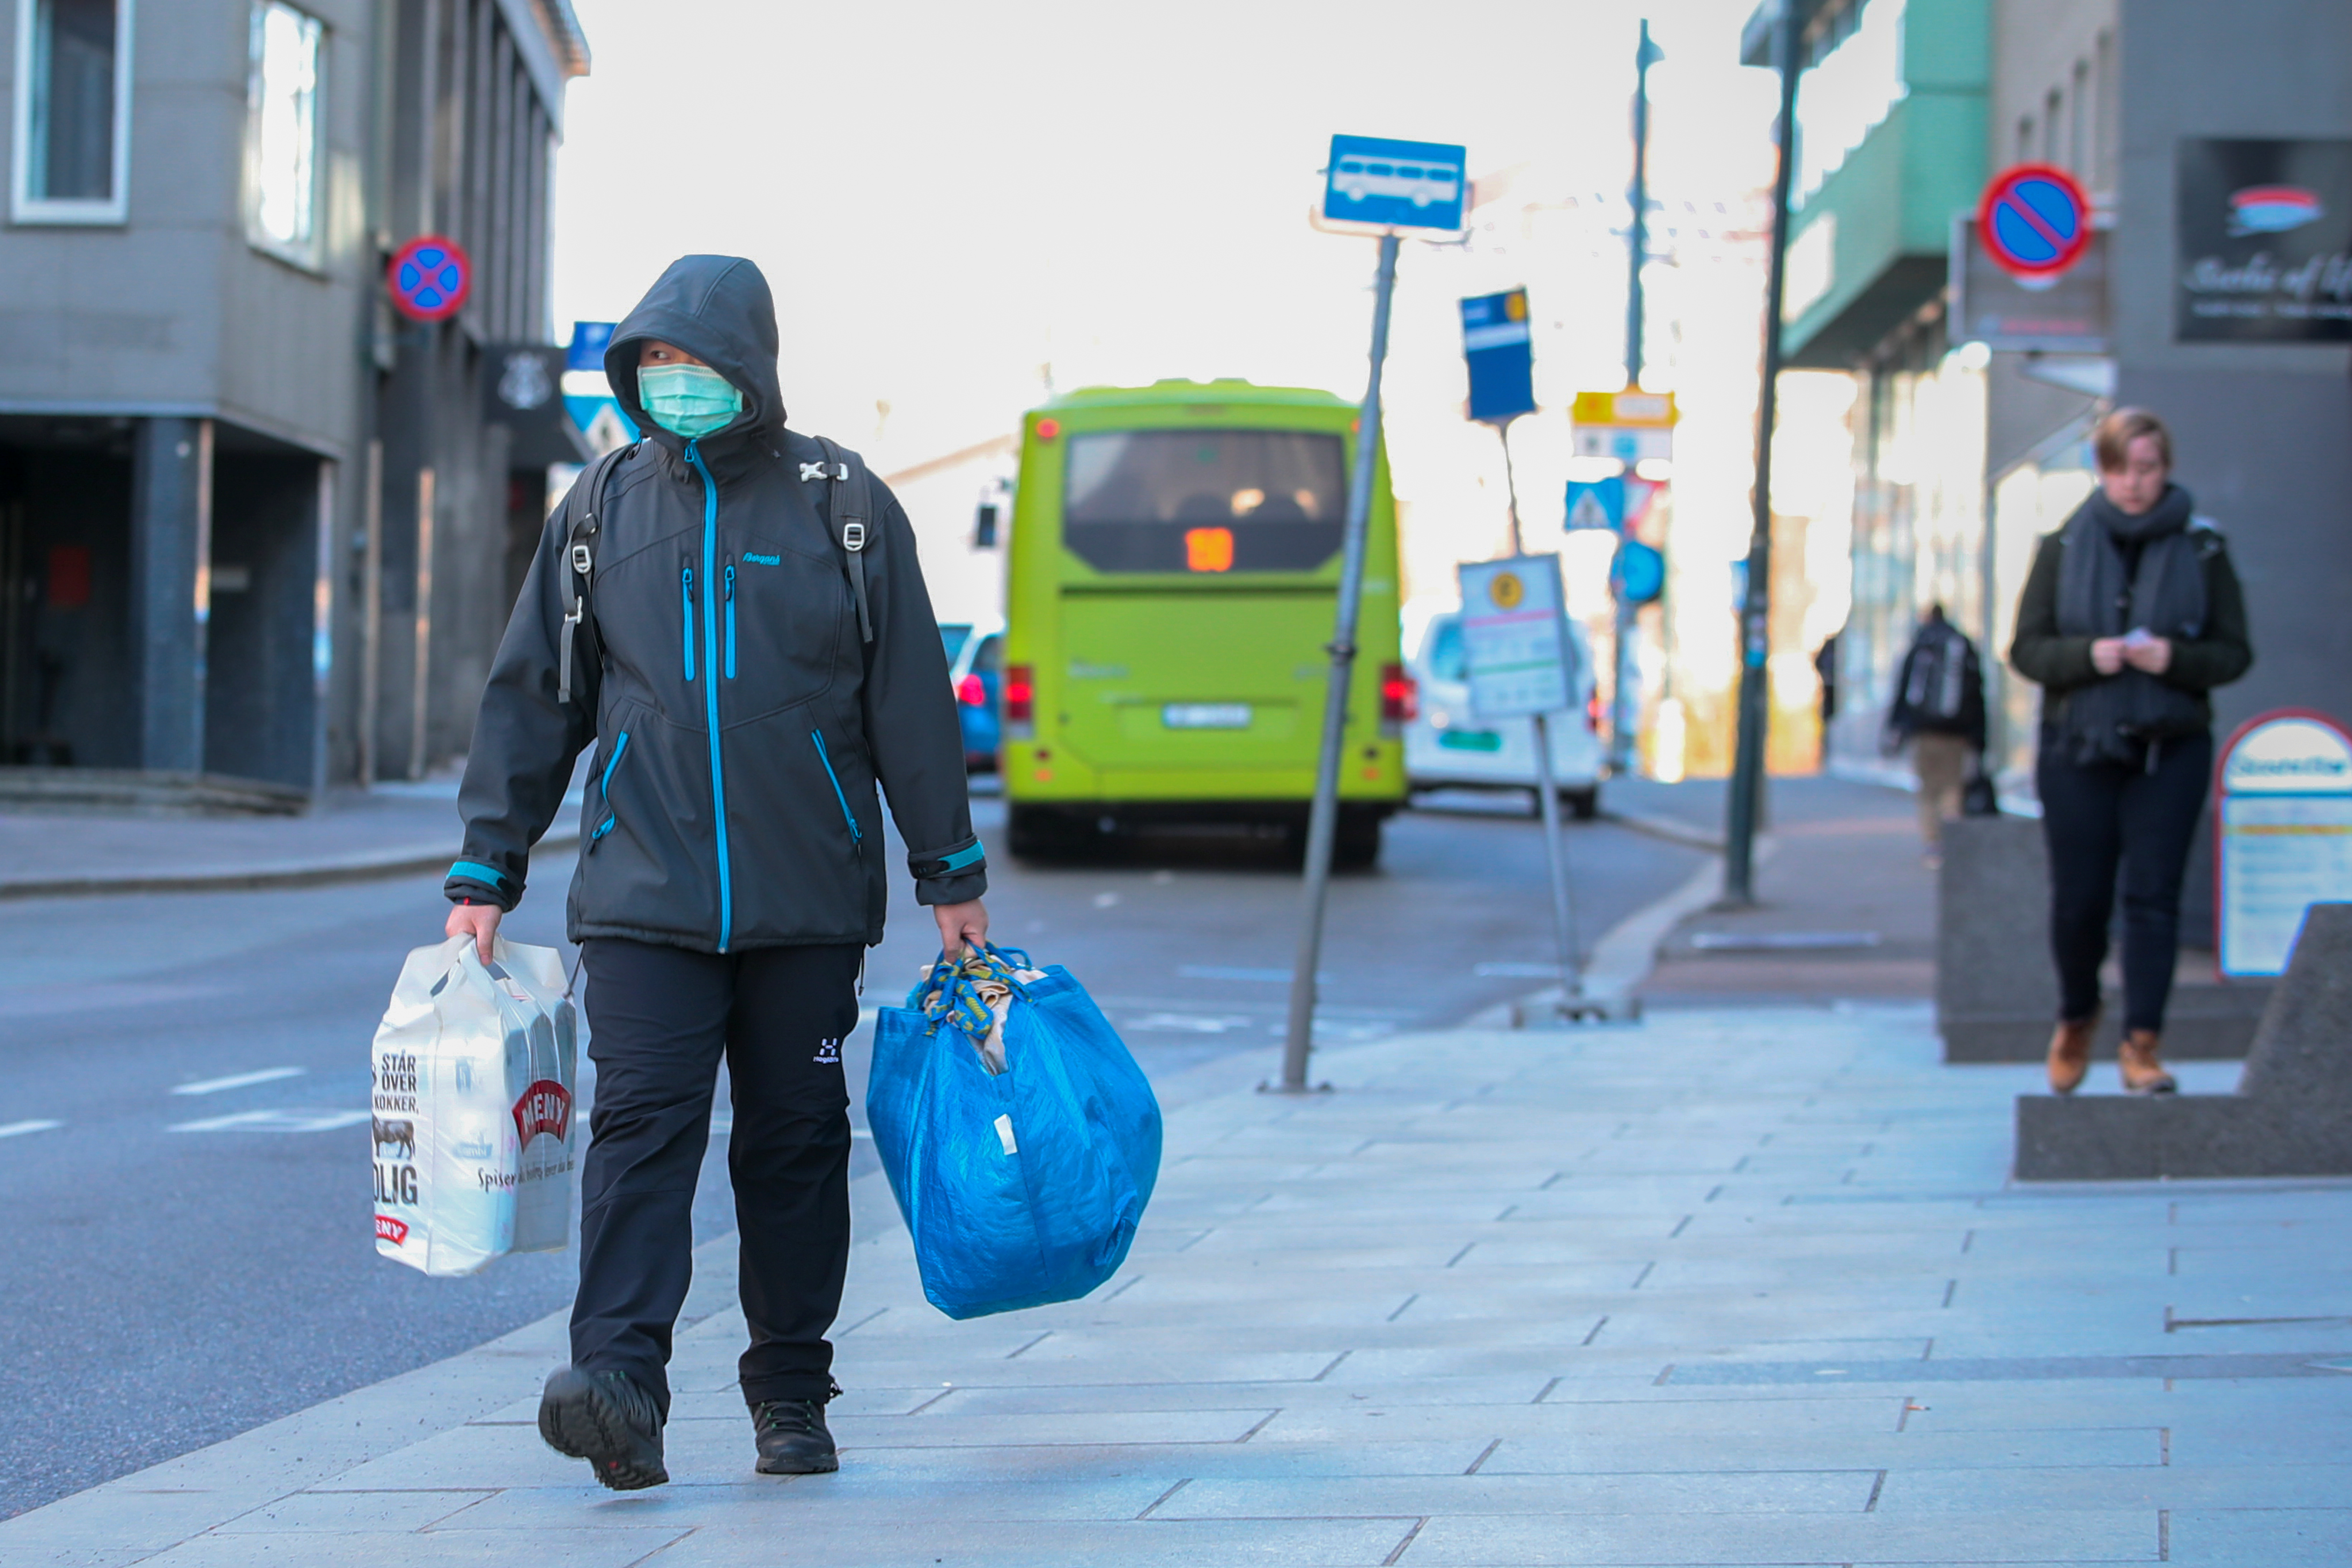 A man wearing a protective mask carries shopping bags as he walks on the streets of Oslo following an outbreak of the coronavirus disease (COVID-19), in Oslo, Norway March 13, 2020. NTB Scanpix/Hakon Mosvold Larsen via REUTERS